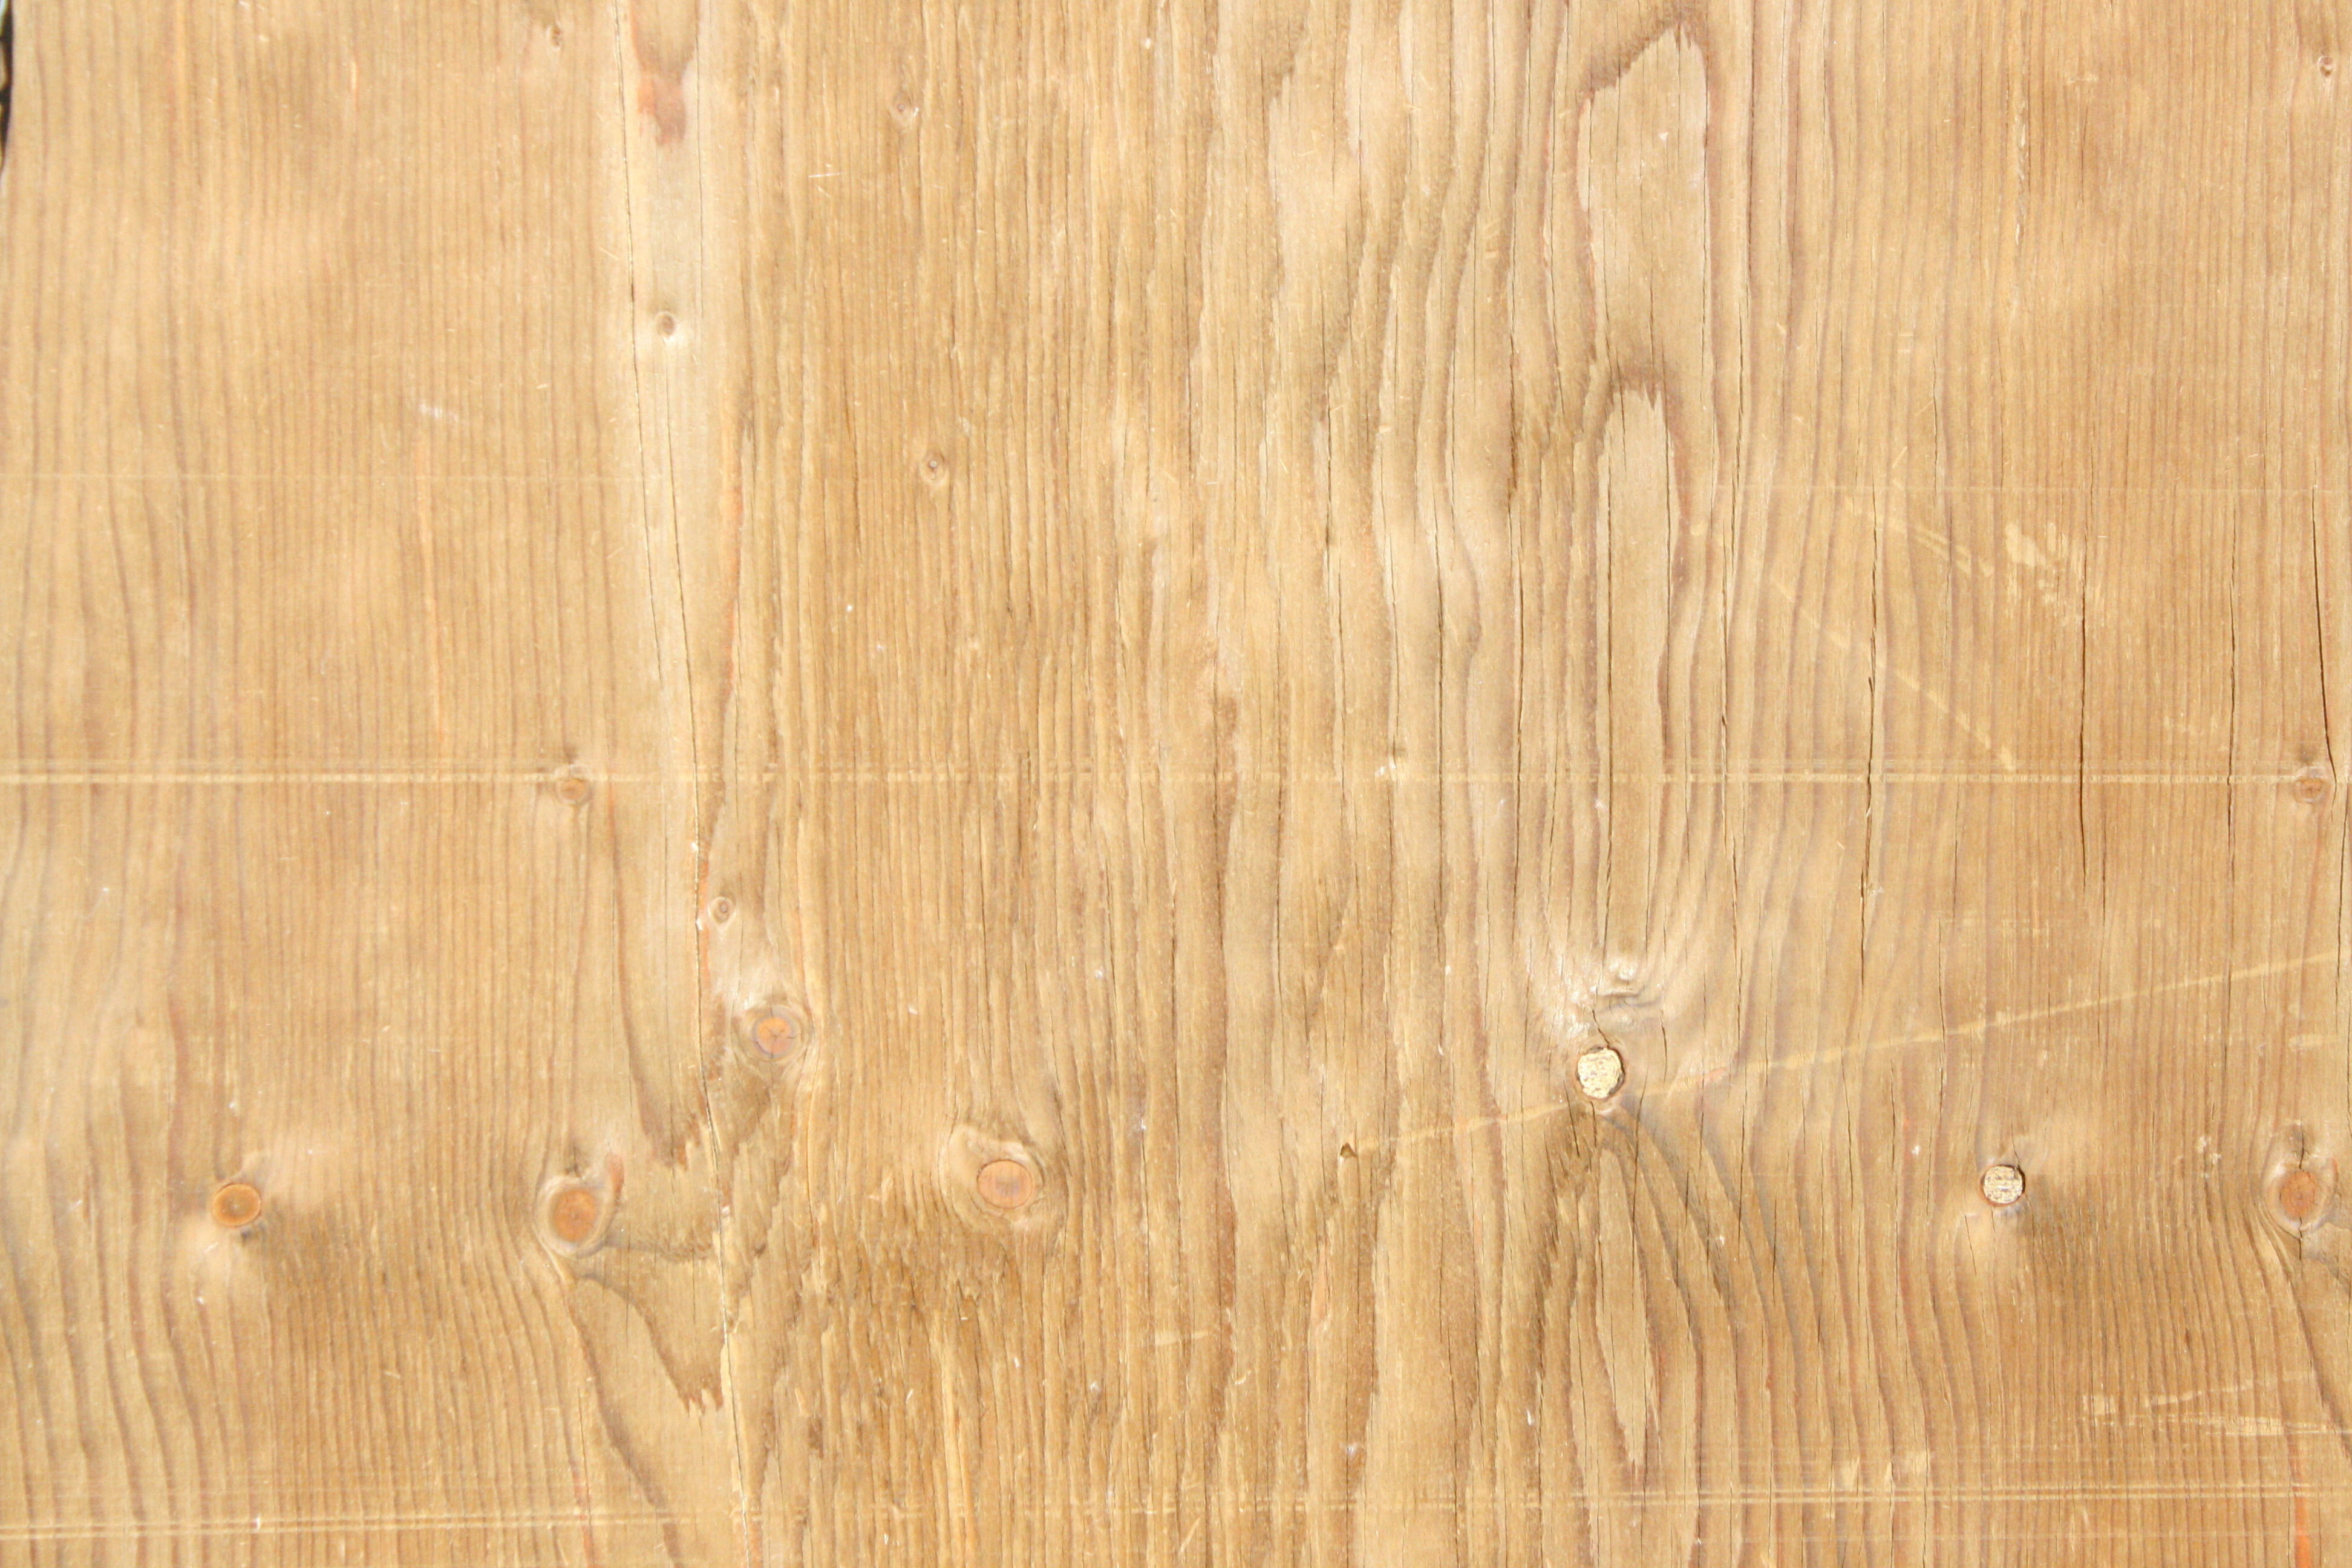 3D Wooden Texture Pack | CGTrader